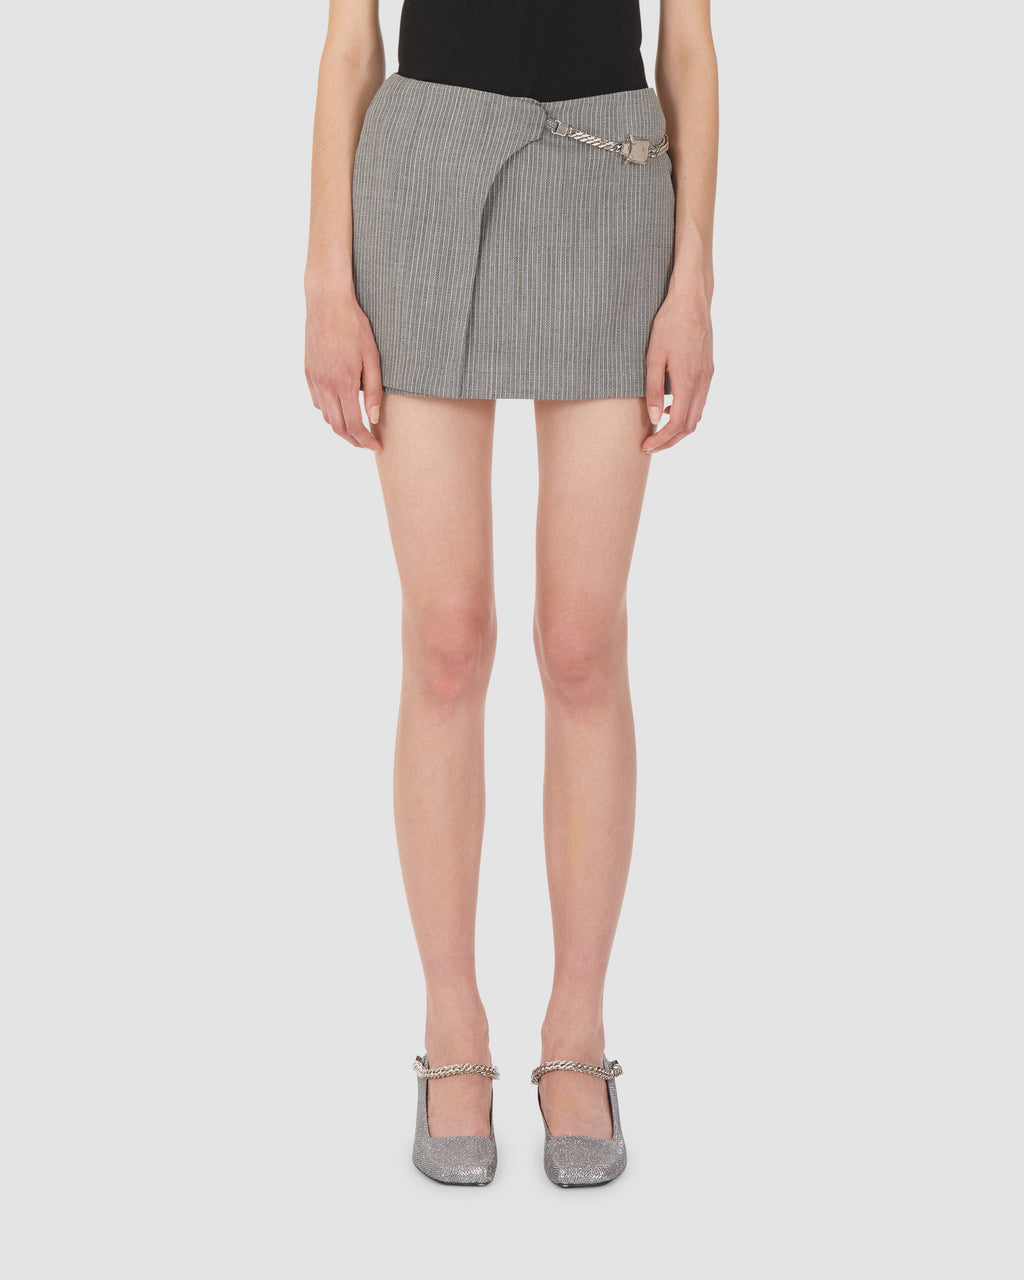 1017 ALYX 9SM | MINI SKIRT W CUBE CHAIN | Skirt | Google Shopping, Grey, S20, S20 Drop II, Skirts, Woman, WOMEN